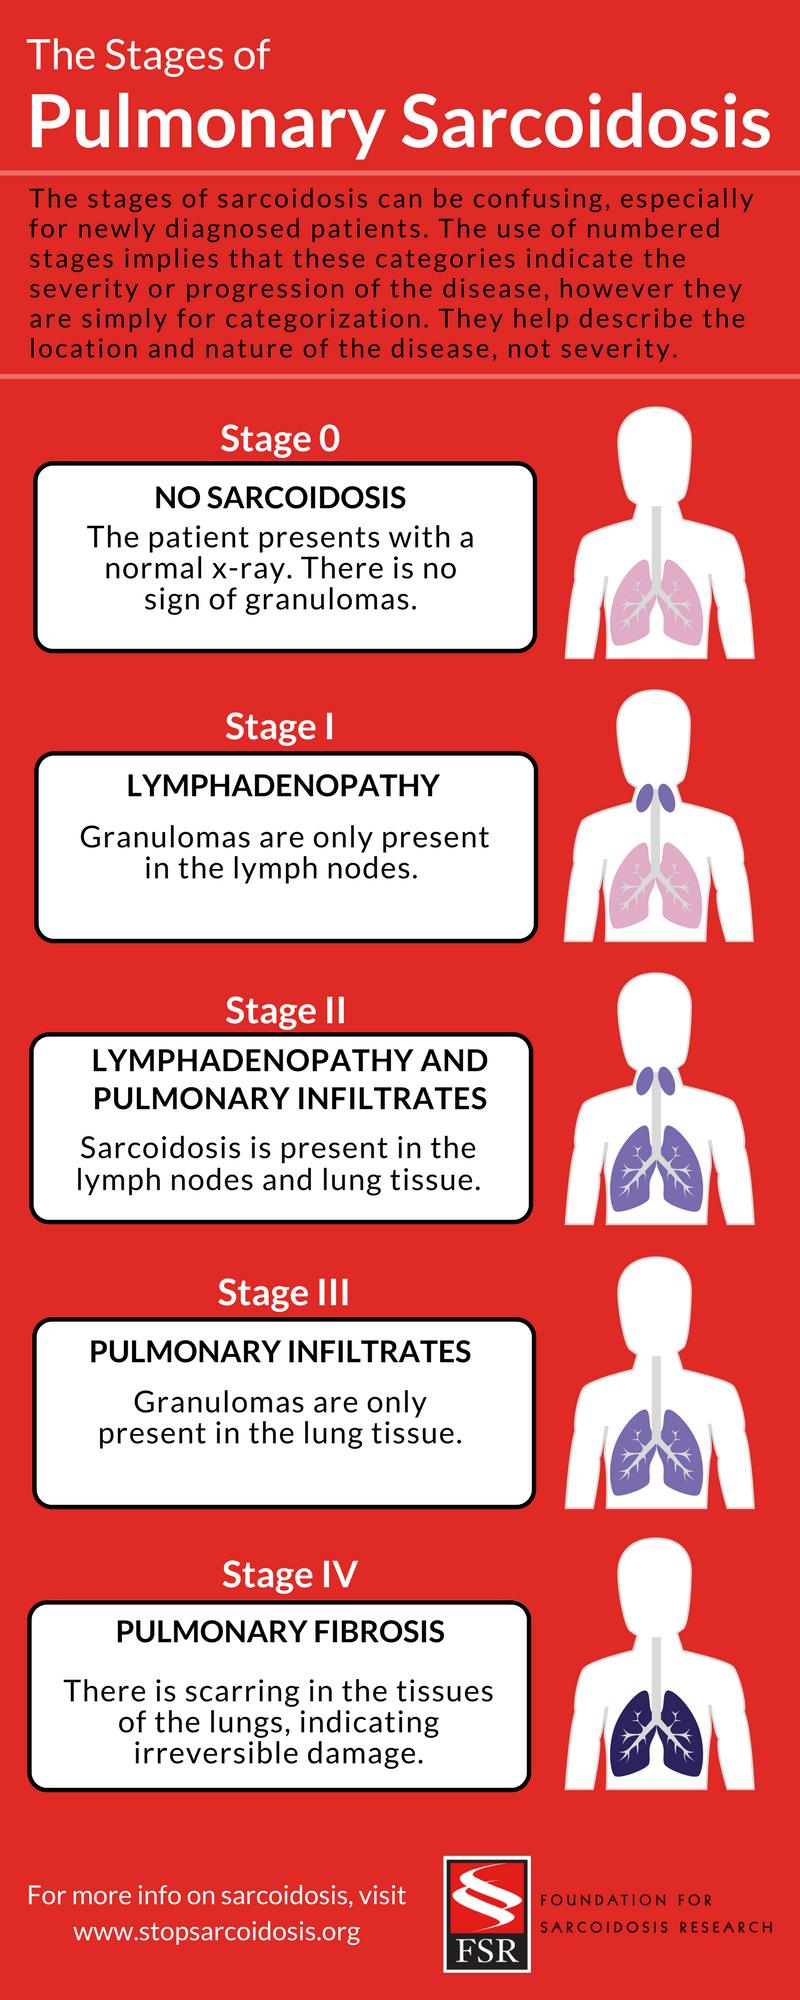 The Stages of Pulmonary Sarcoidosis- What Do They Really Mean